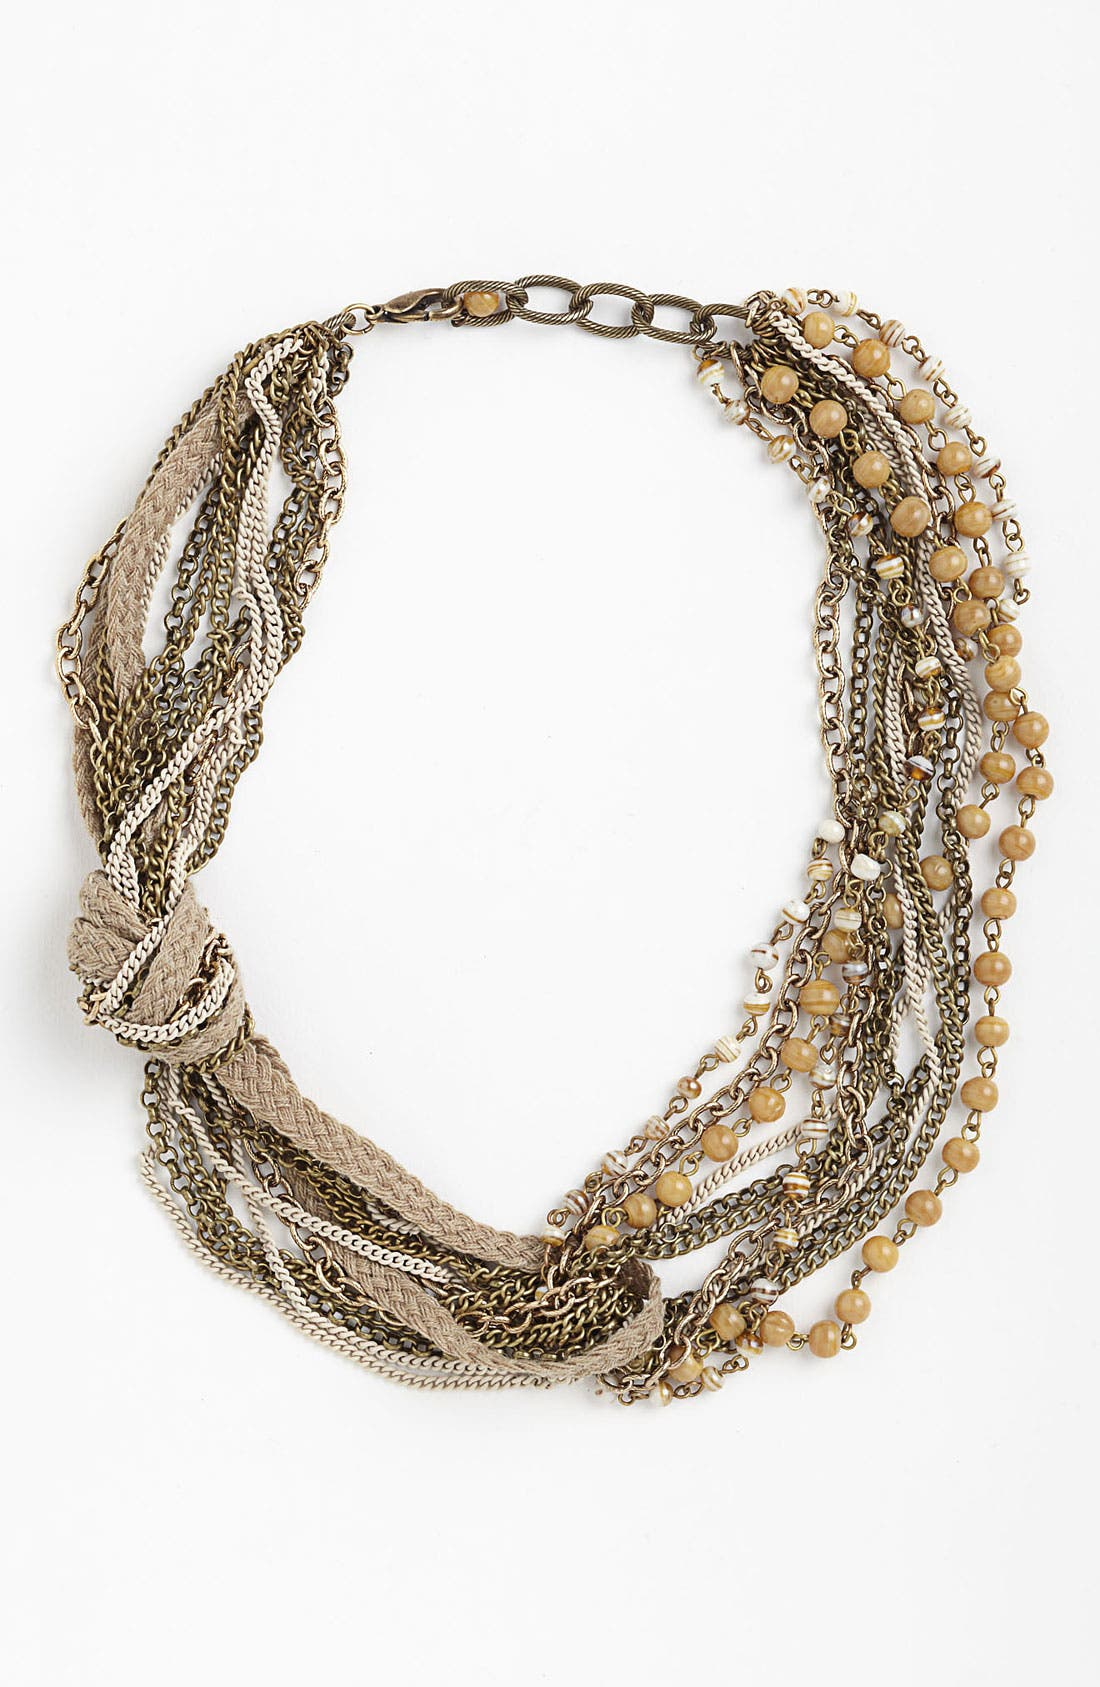 Alternate Image 1 Selected - Bonnie Jonas Multistrand Necklace